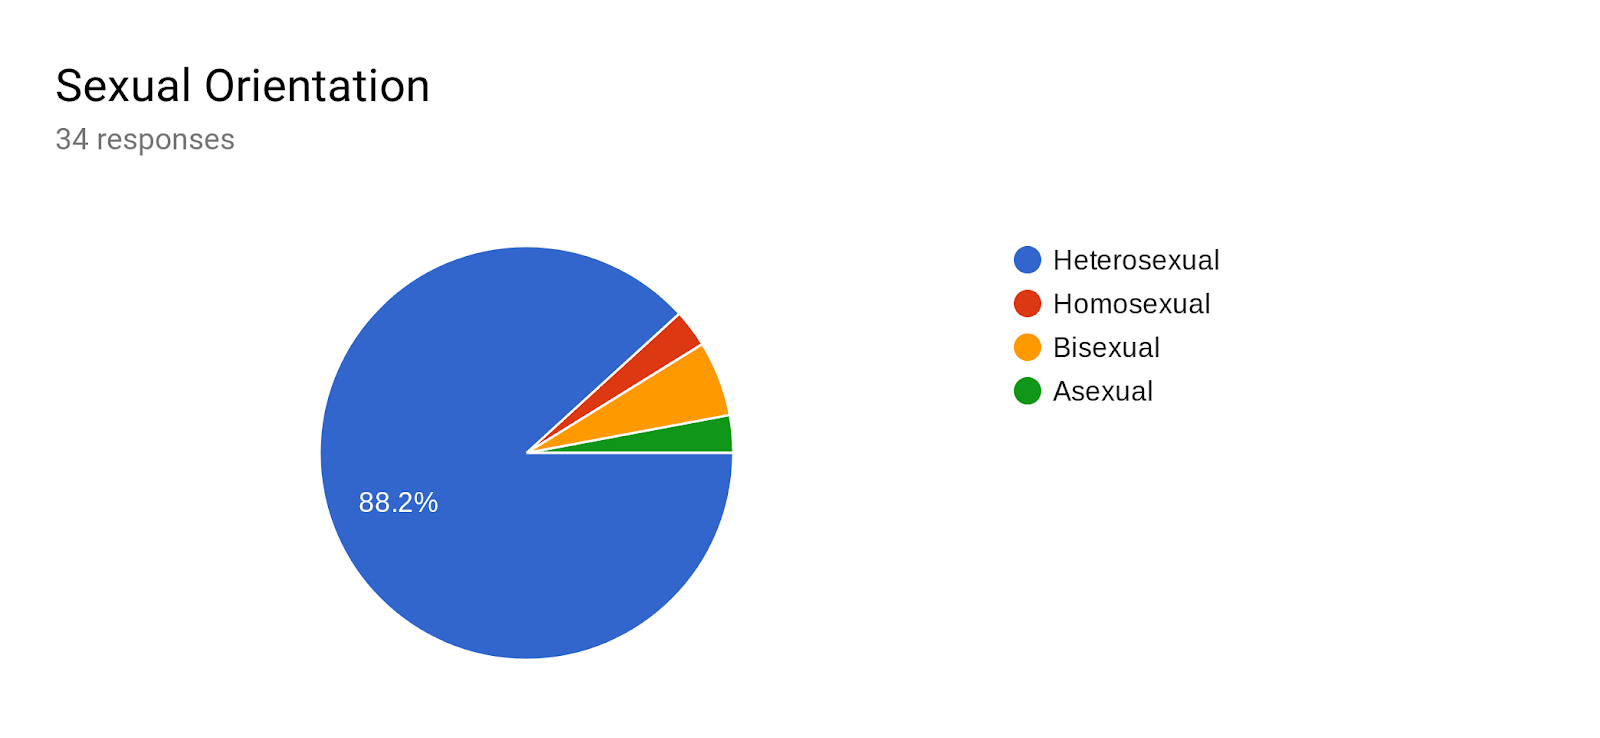 Forms response chart. Question title: Sexual Orientation. Number of responses: 34 responses.